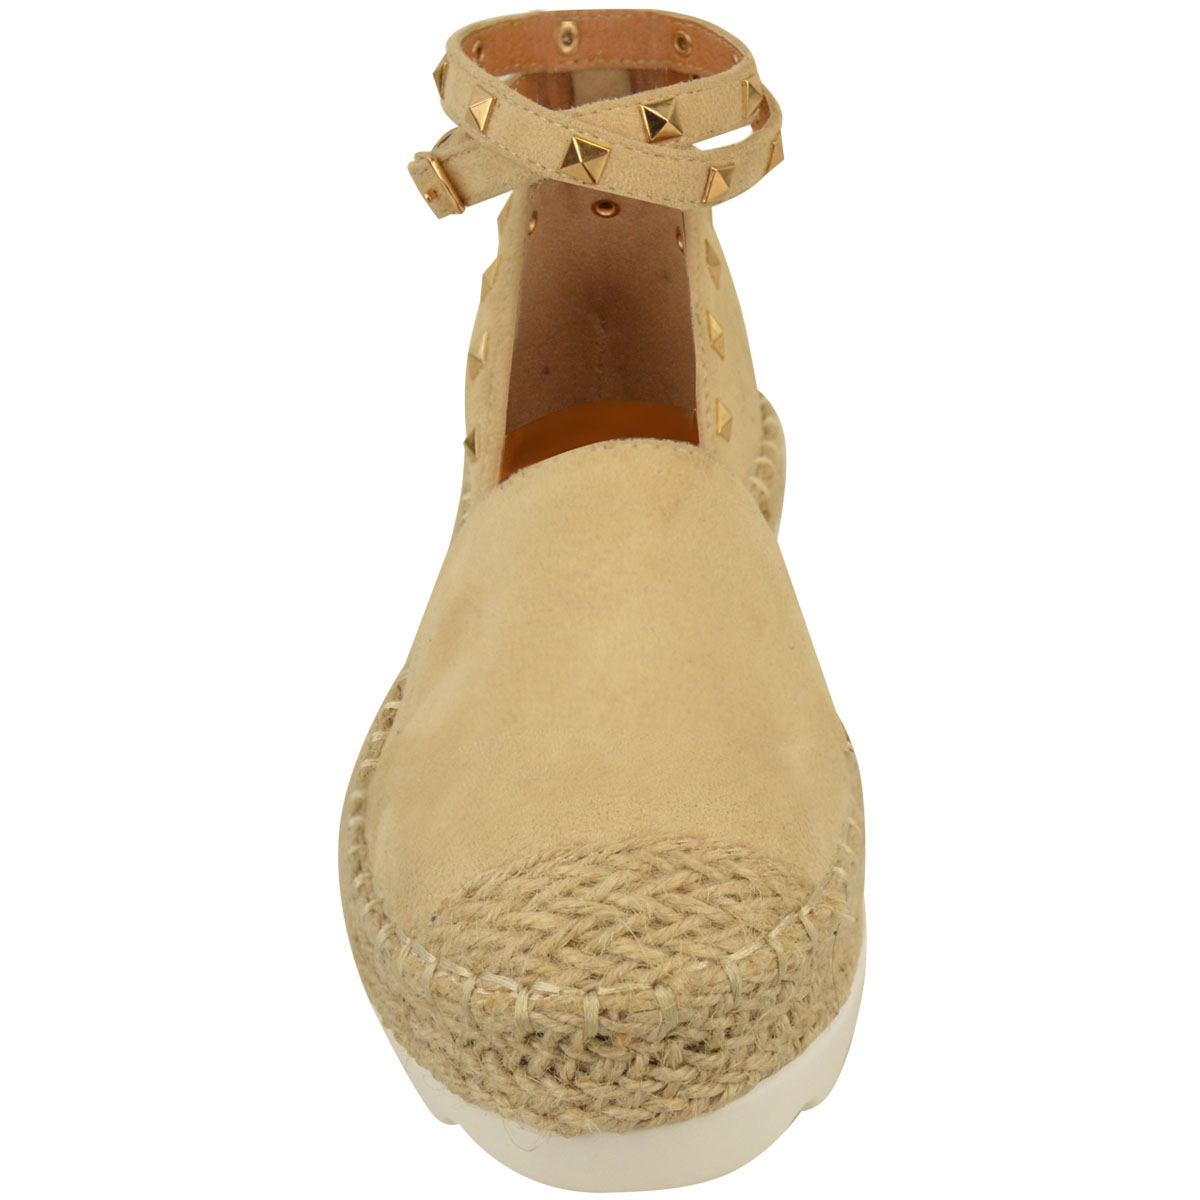 Womens-Ladies-Espadrilles-Flat-Pom-Pom-Sandals-Slip-On-Strappy-Comfy-Size-Shoes thumbnail 13